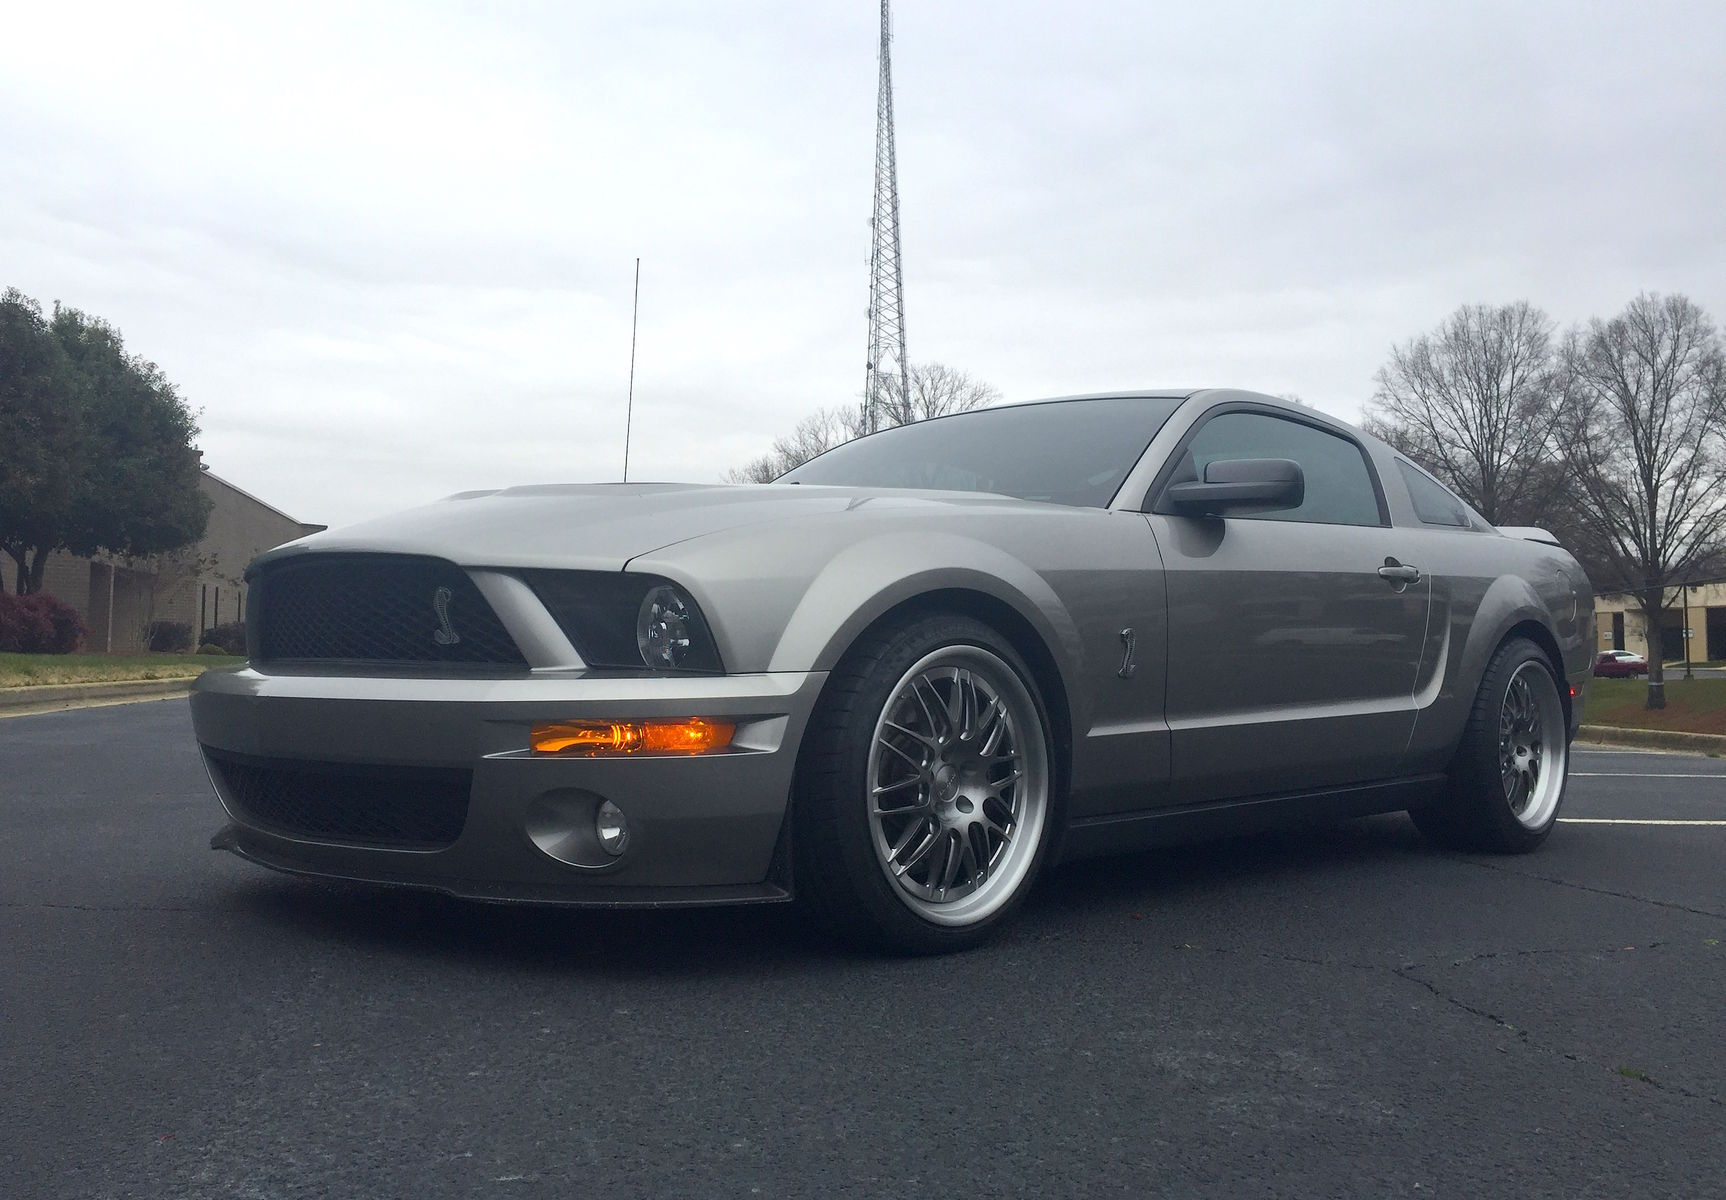 2009 Ford Shelby GT500   S197 Ford Mustang Shelby GT500 on Forgeline GX3 Wheels